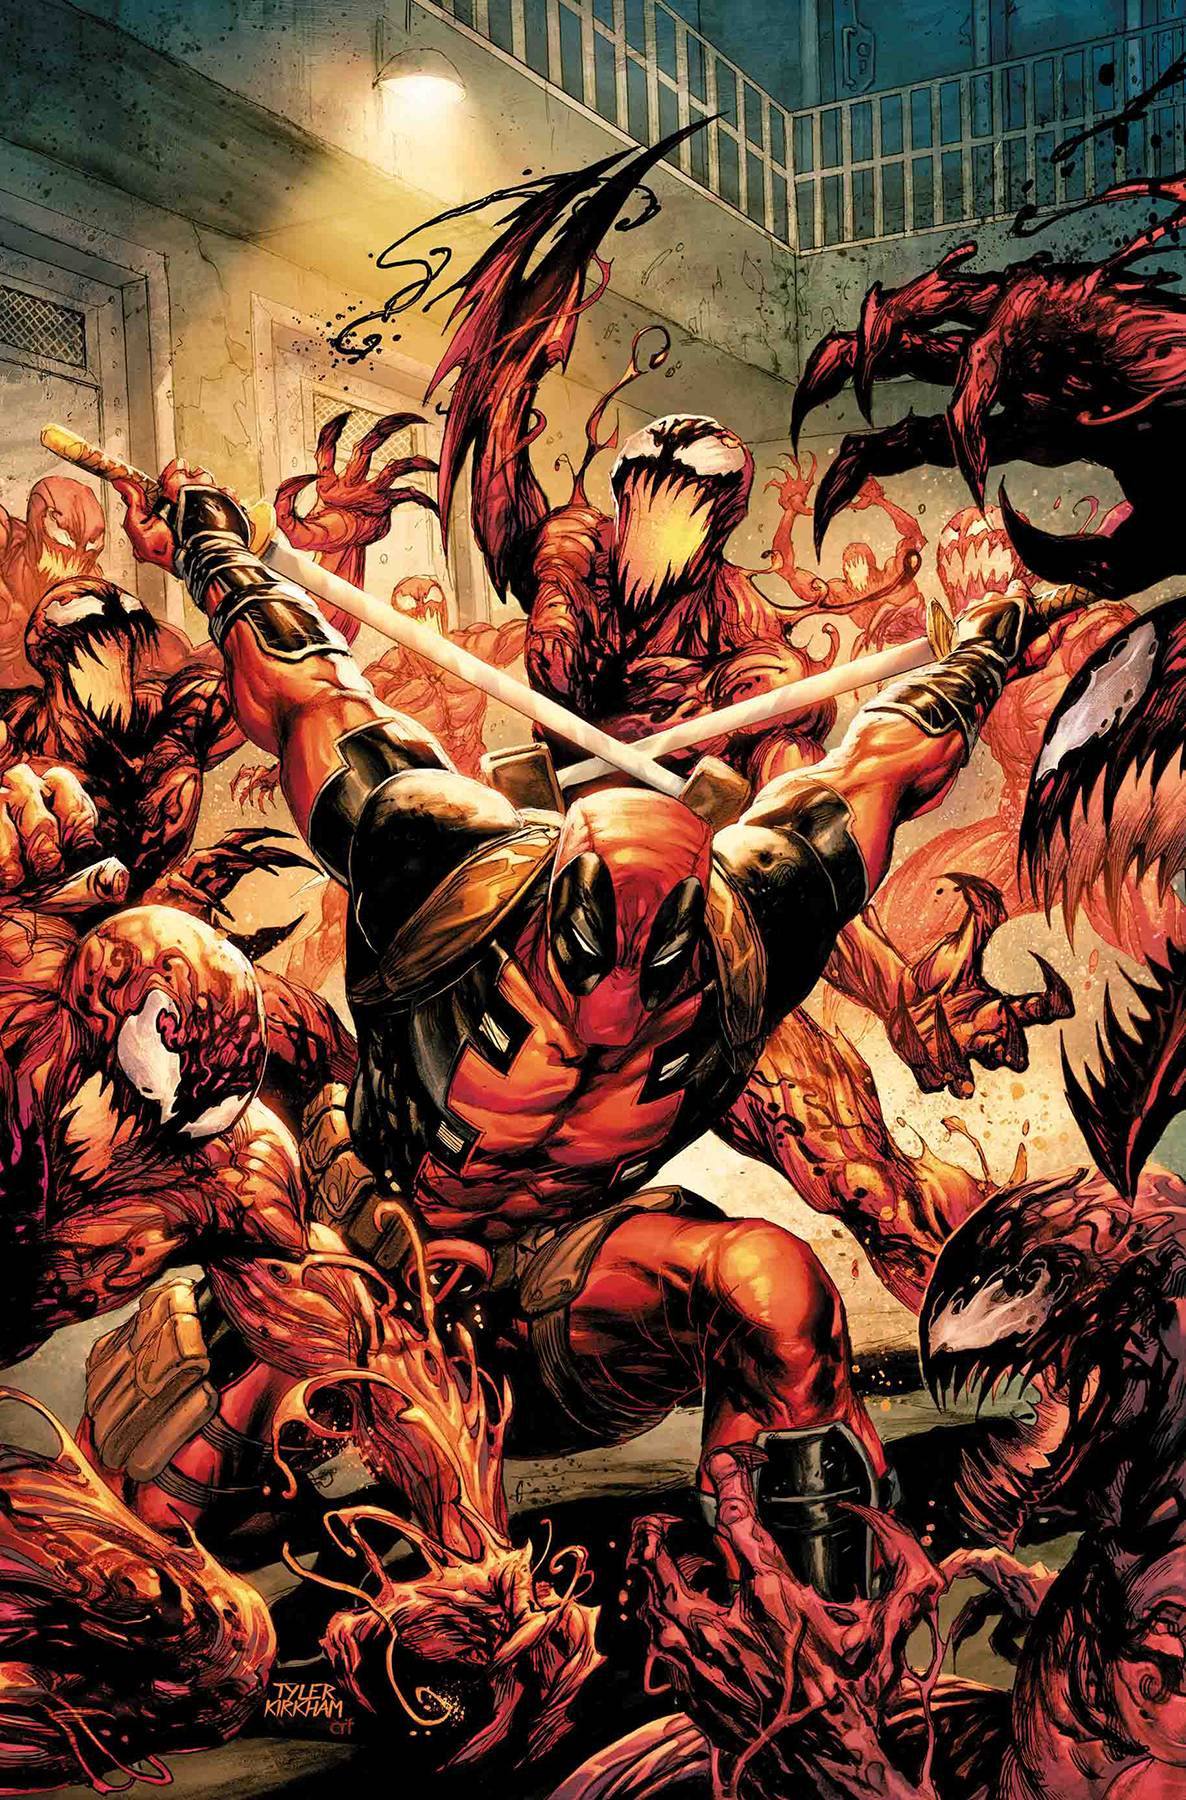 08/21/2019 ABSOLUTE CARNAGE VS DEADPOOL #1 (OF 3) AC